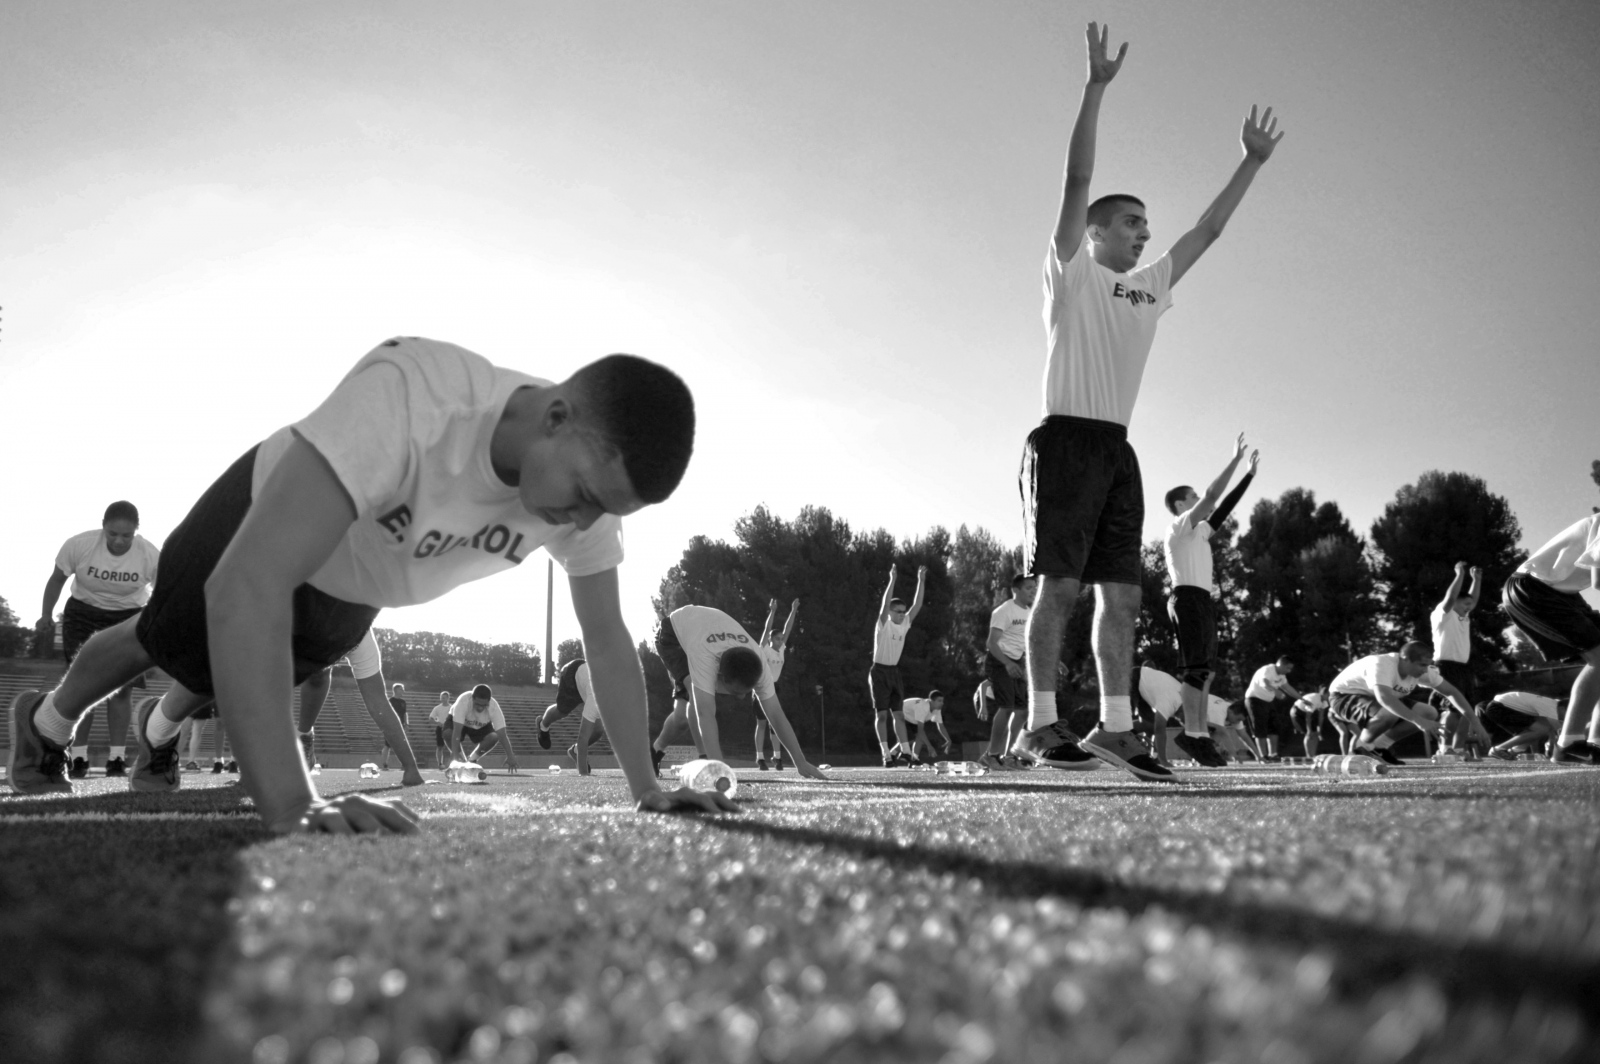 Recruits do burpees as part of their physical training before class at College of the Canyons on Sept. 27, 2014.